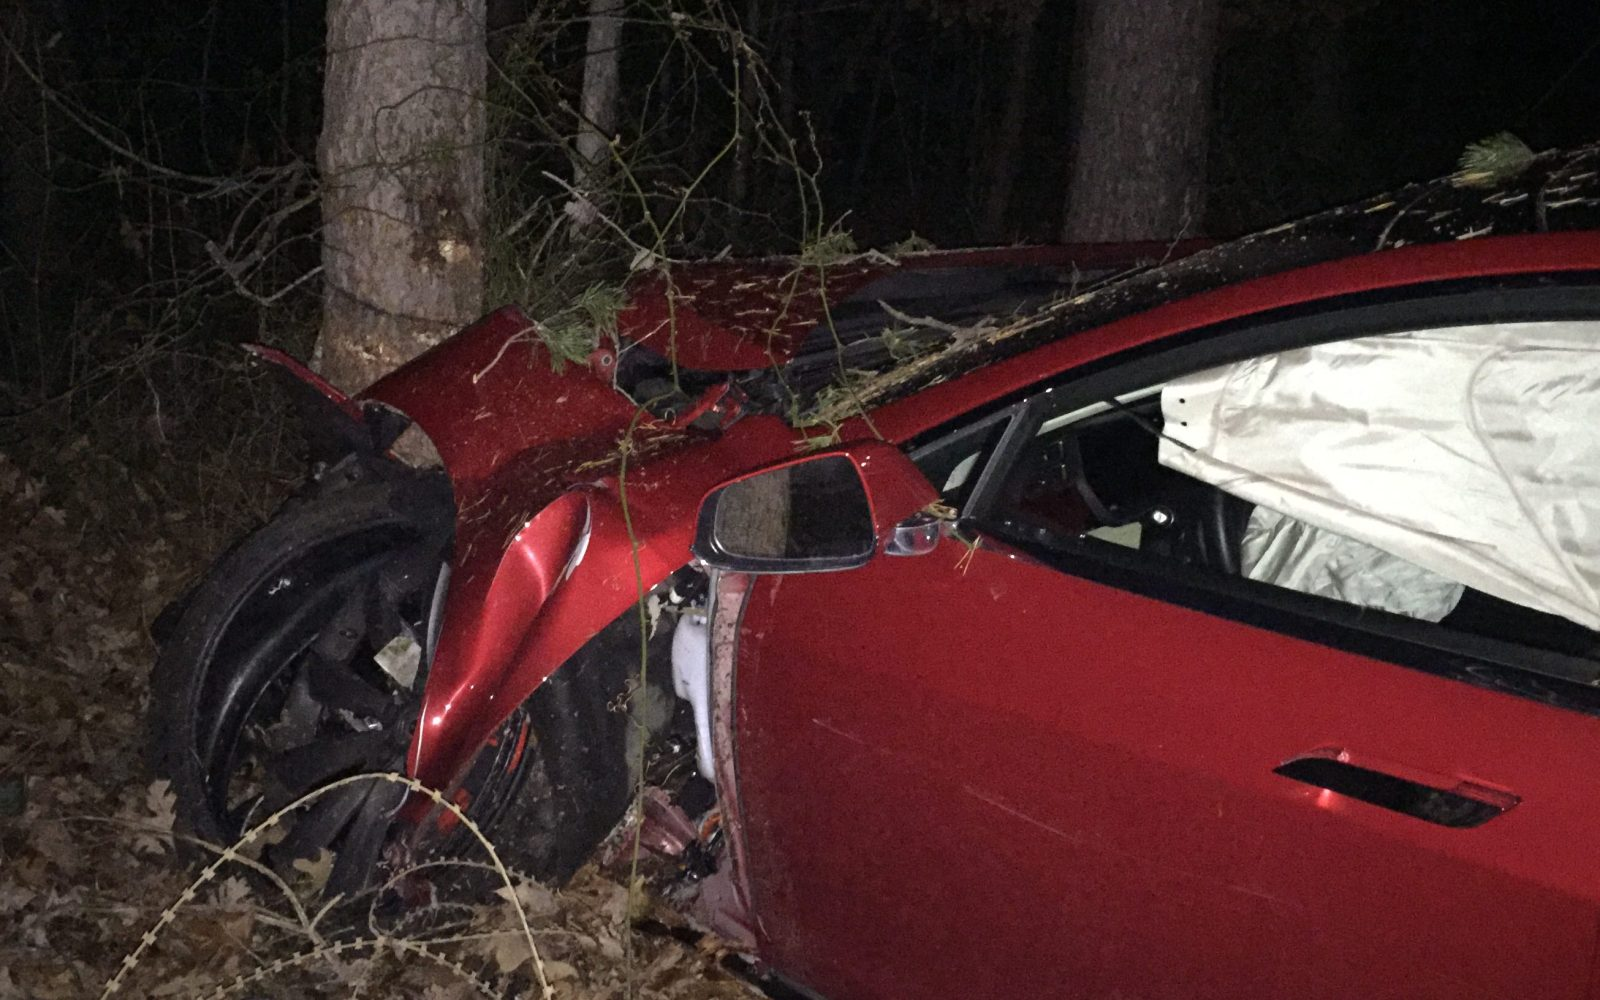 Tesla owner credits Model S' safety features and lack of engine for saving his life in high-speed crash